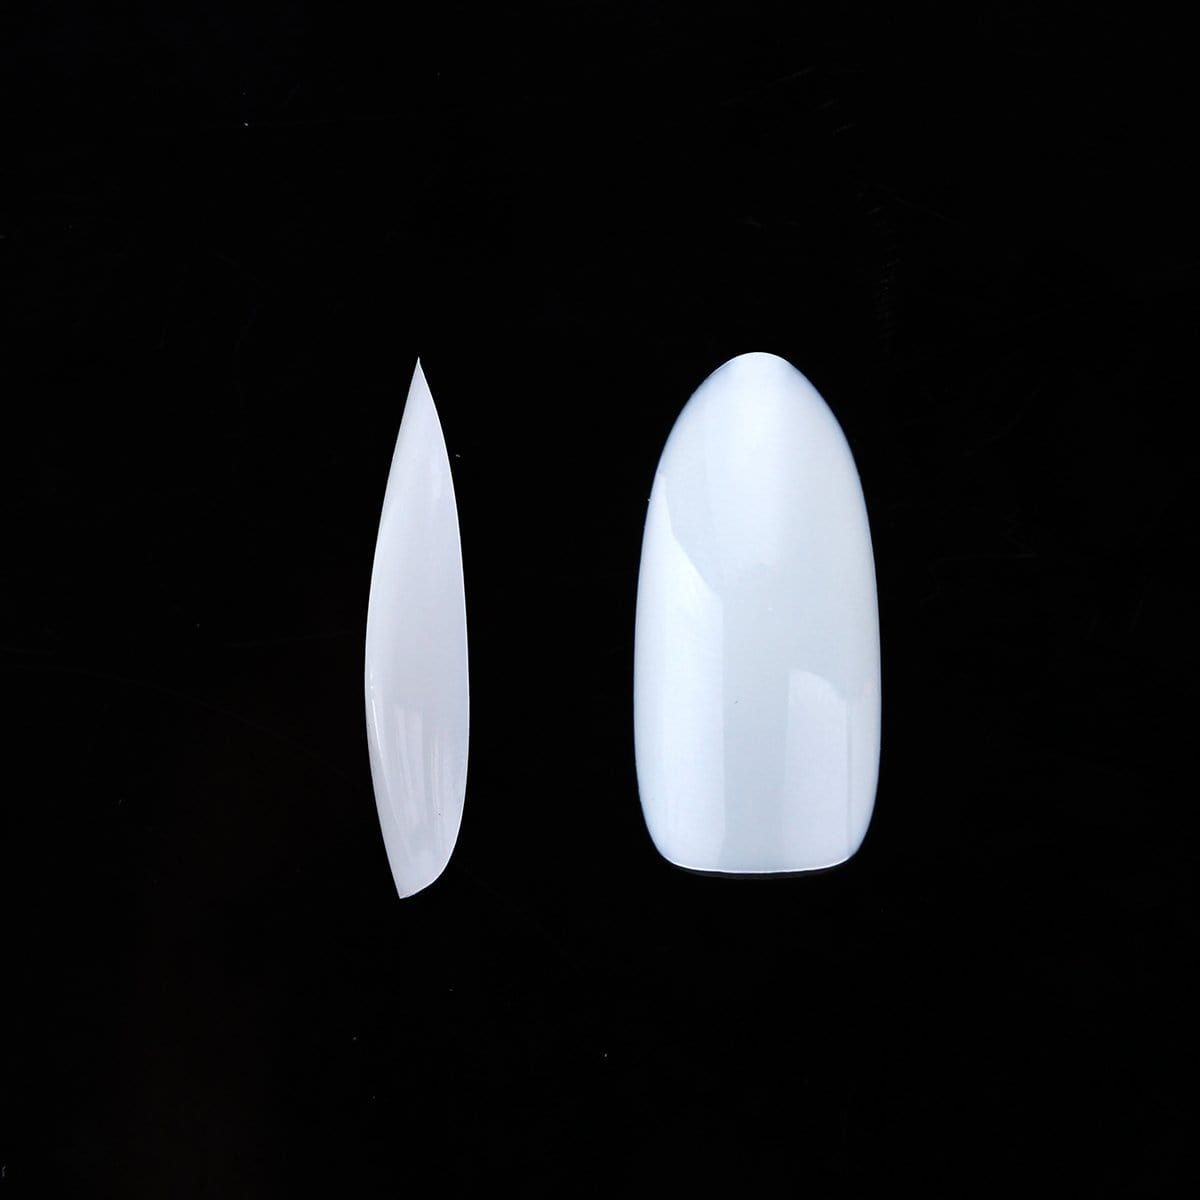 500pcs Oval Nails Tips Natural Full Cover 10 Sizes - Makartt